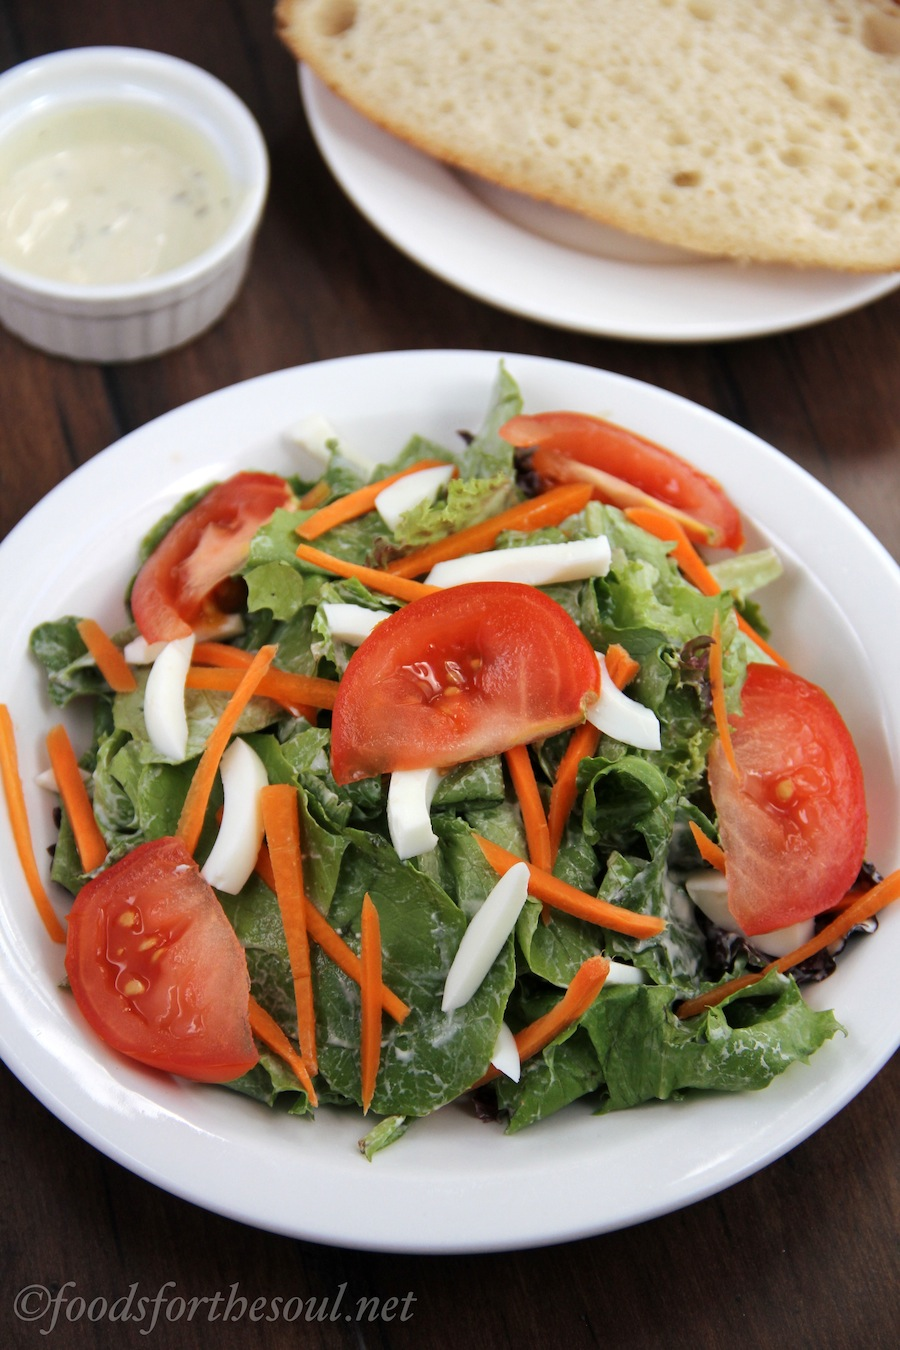 carrot, tomato, and egg salad with creamy dijon dressing